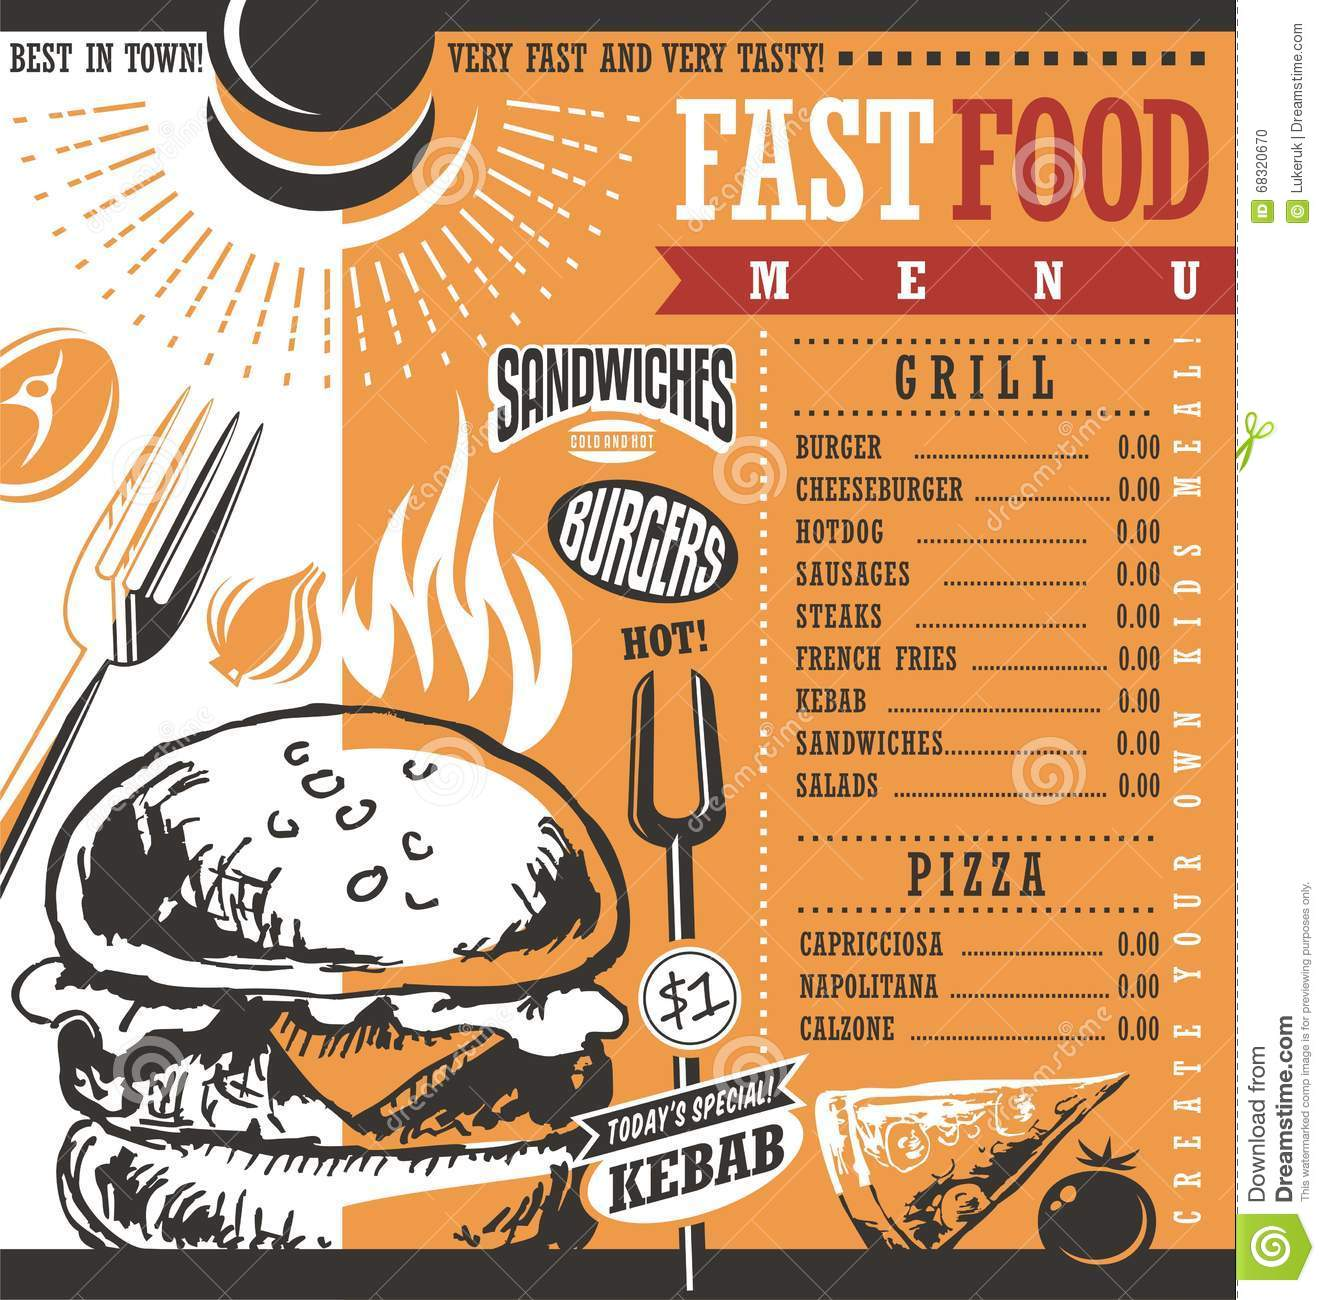 Price for a poster design - Fast Food Restaurant Menu Design Stock Photo